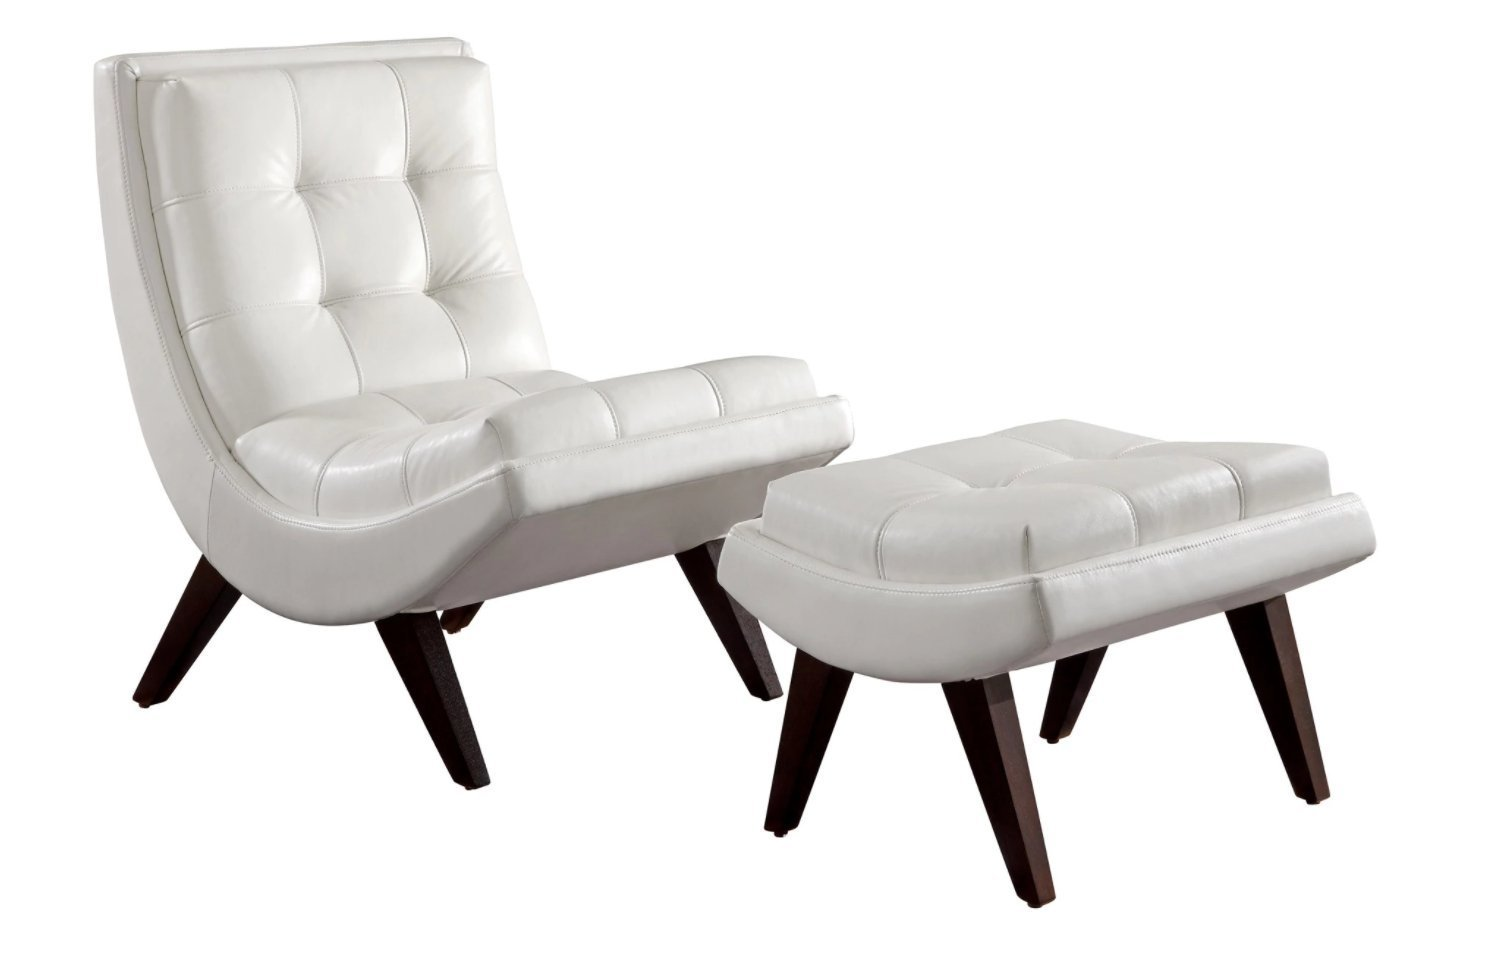 Get Quotations · Lounge Chair Ottoman Set Is Made From Tufted White Leather  With Urban / Modern Feel.